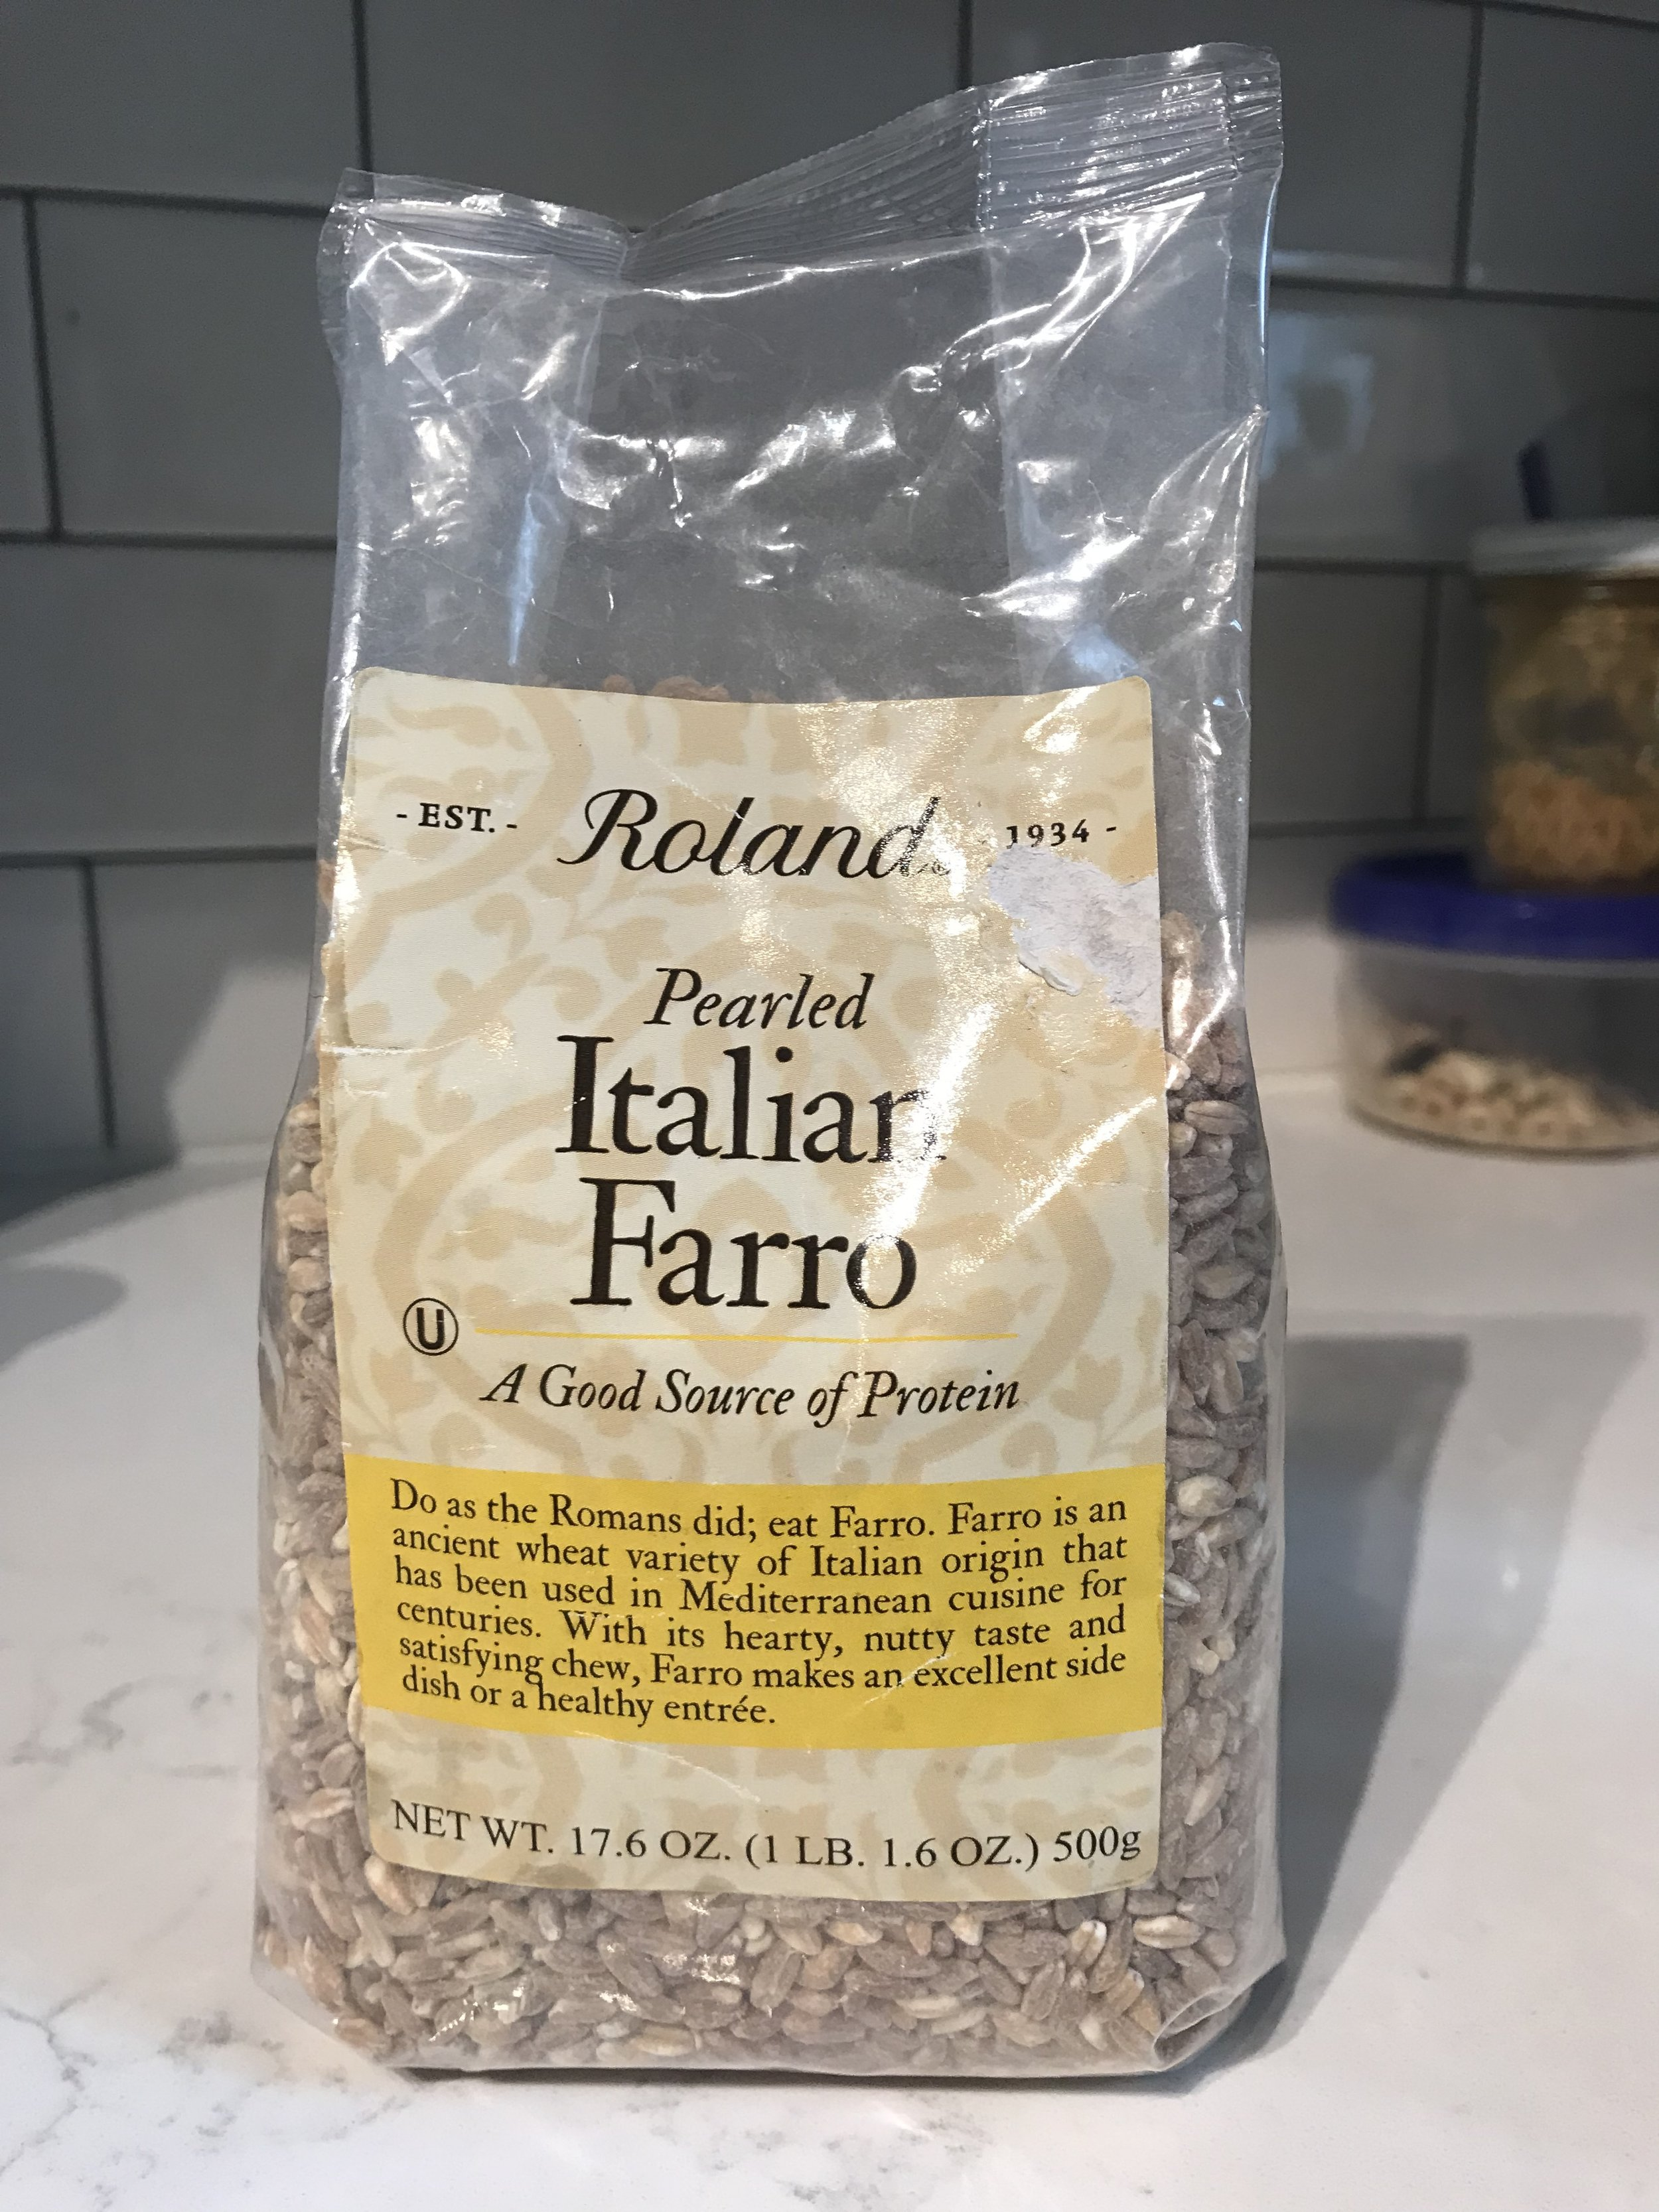 I used this brand that I picked up from the Italian market, but I also really love Bobs red Mill organic farro.